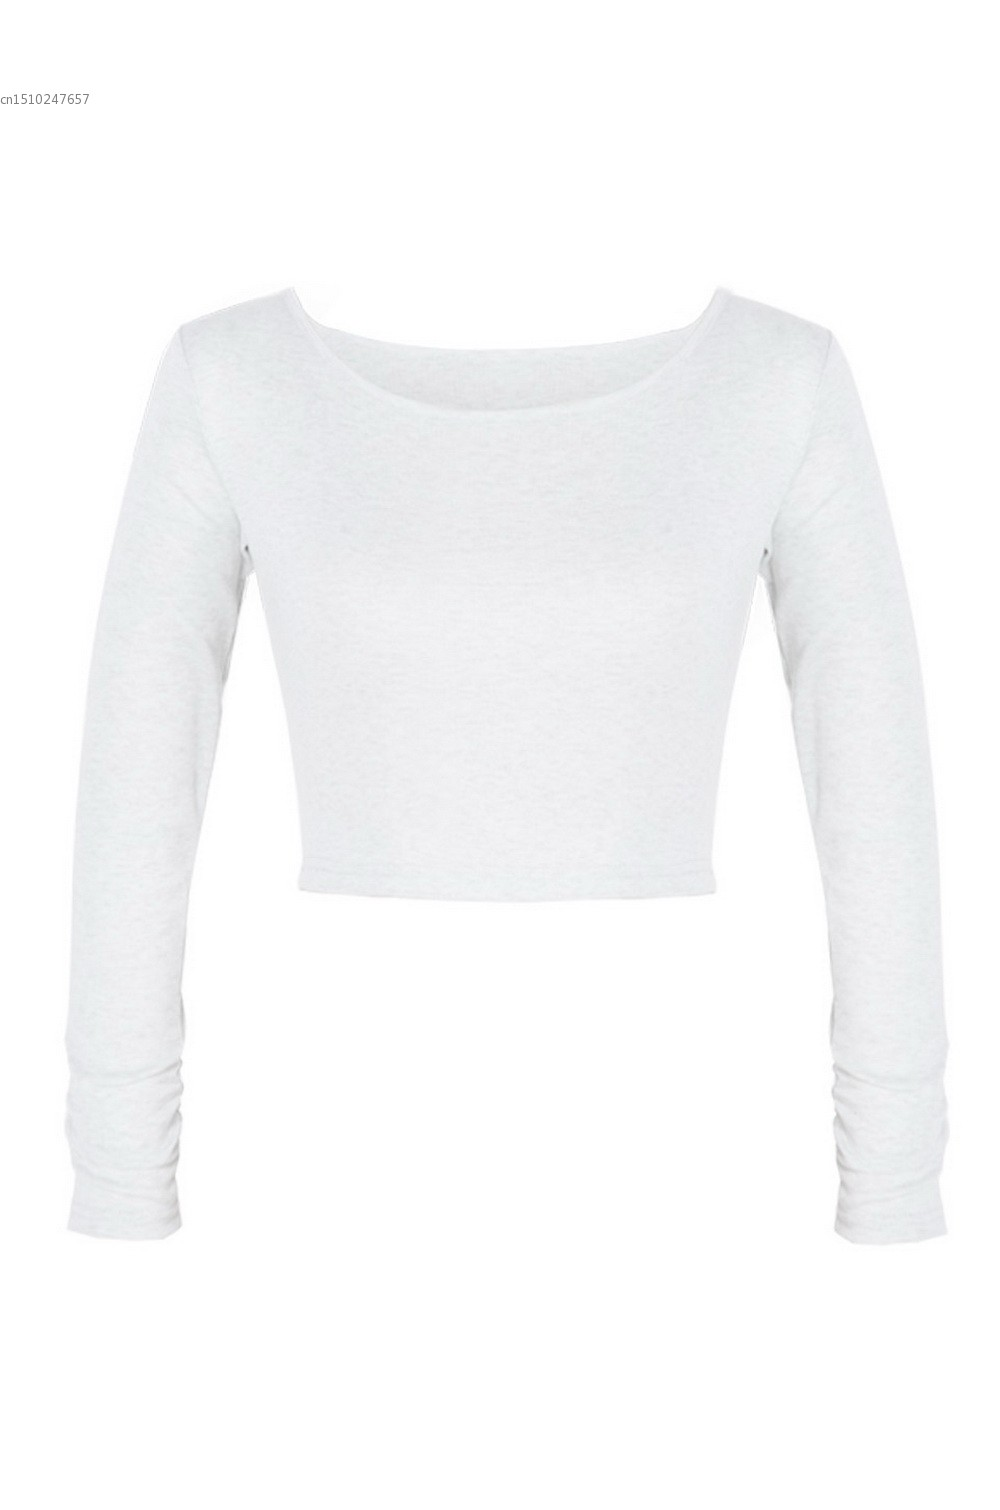 58957f5a281 Ladies Sexy O Neck Long Sleeve design Retro belly cotton Crop Top T Shirt  summer Women Autumn Sexy Tops-in T-Shirts from Women's Clothing on  Aliexpress.com ...